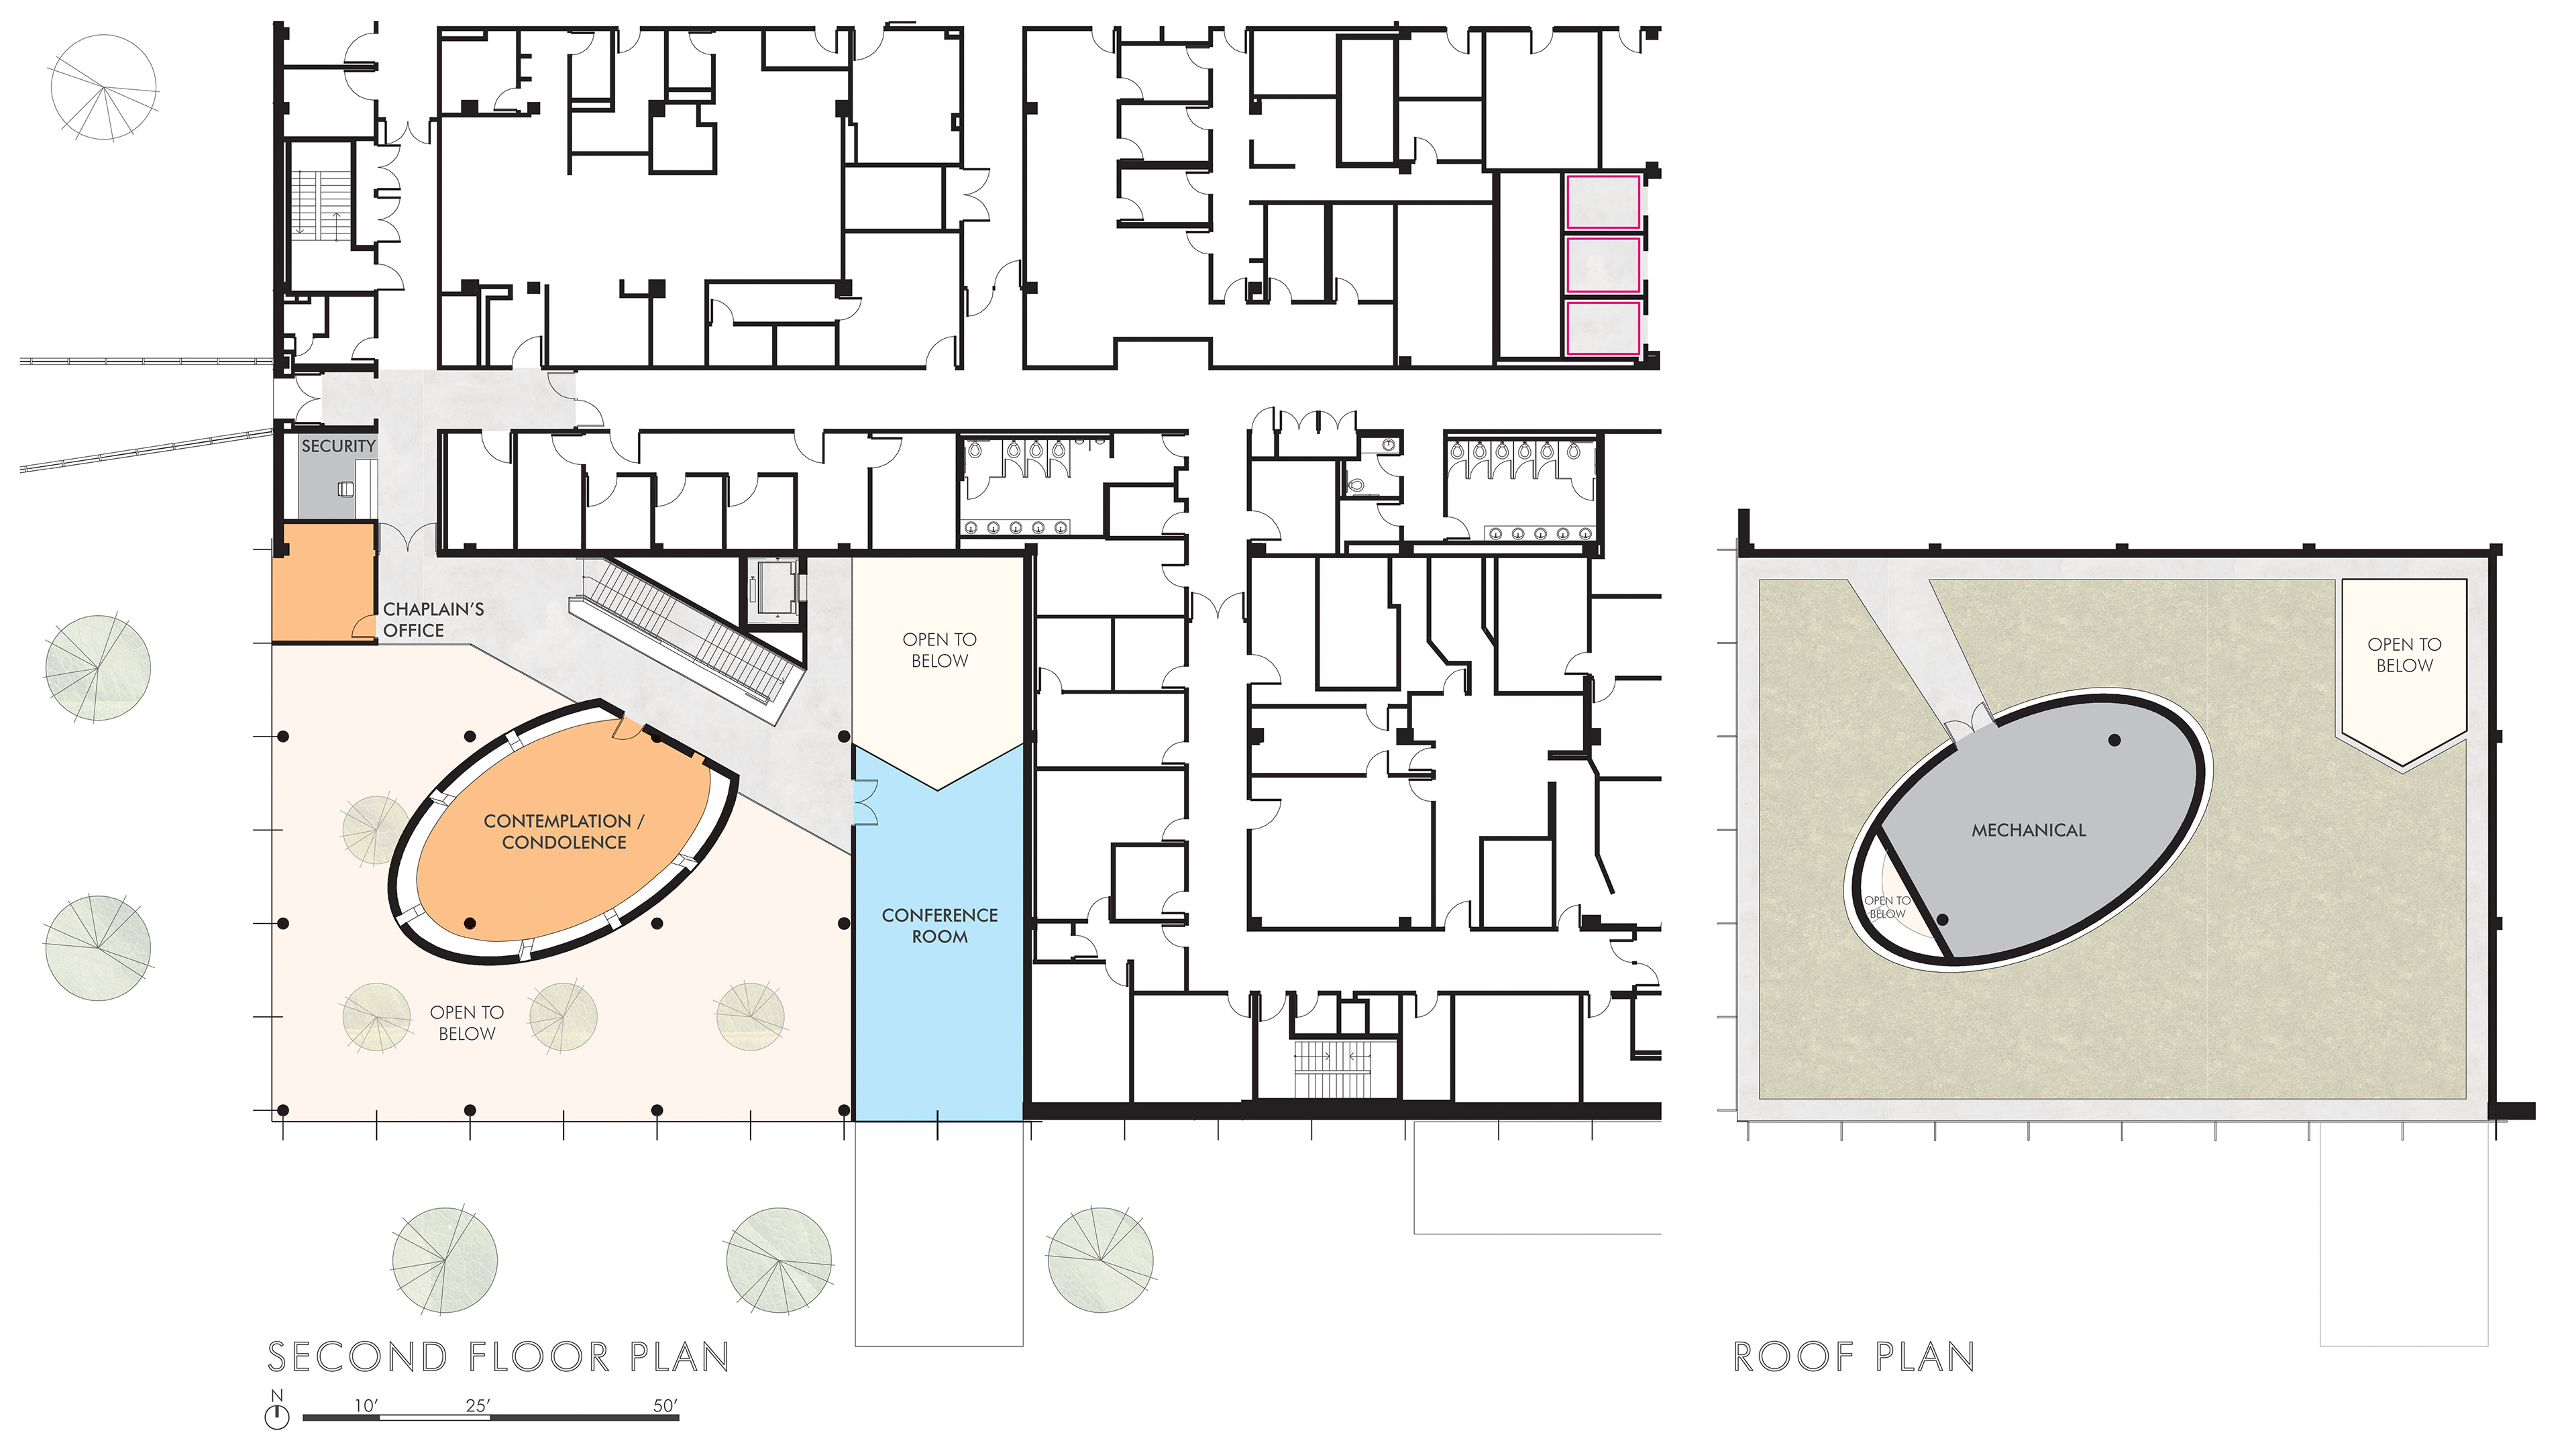 security floor plan House plan with security layout create floor plan examples like this one called house plan with security layout from professionally-designed floor plan templates simply add walls, windows, doors, and fixtures from smartdraw's large collection of floor plan libraries.